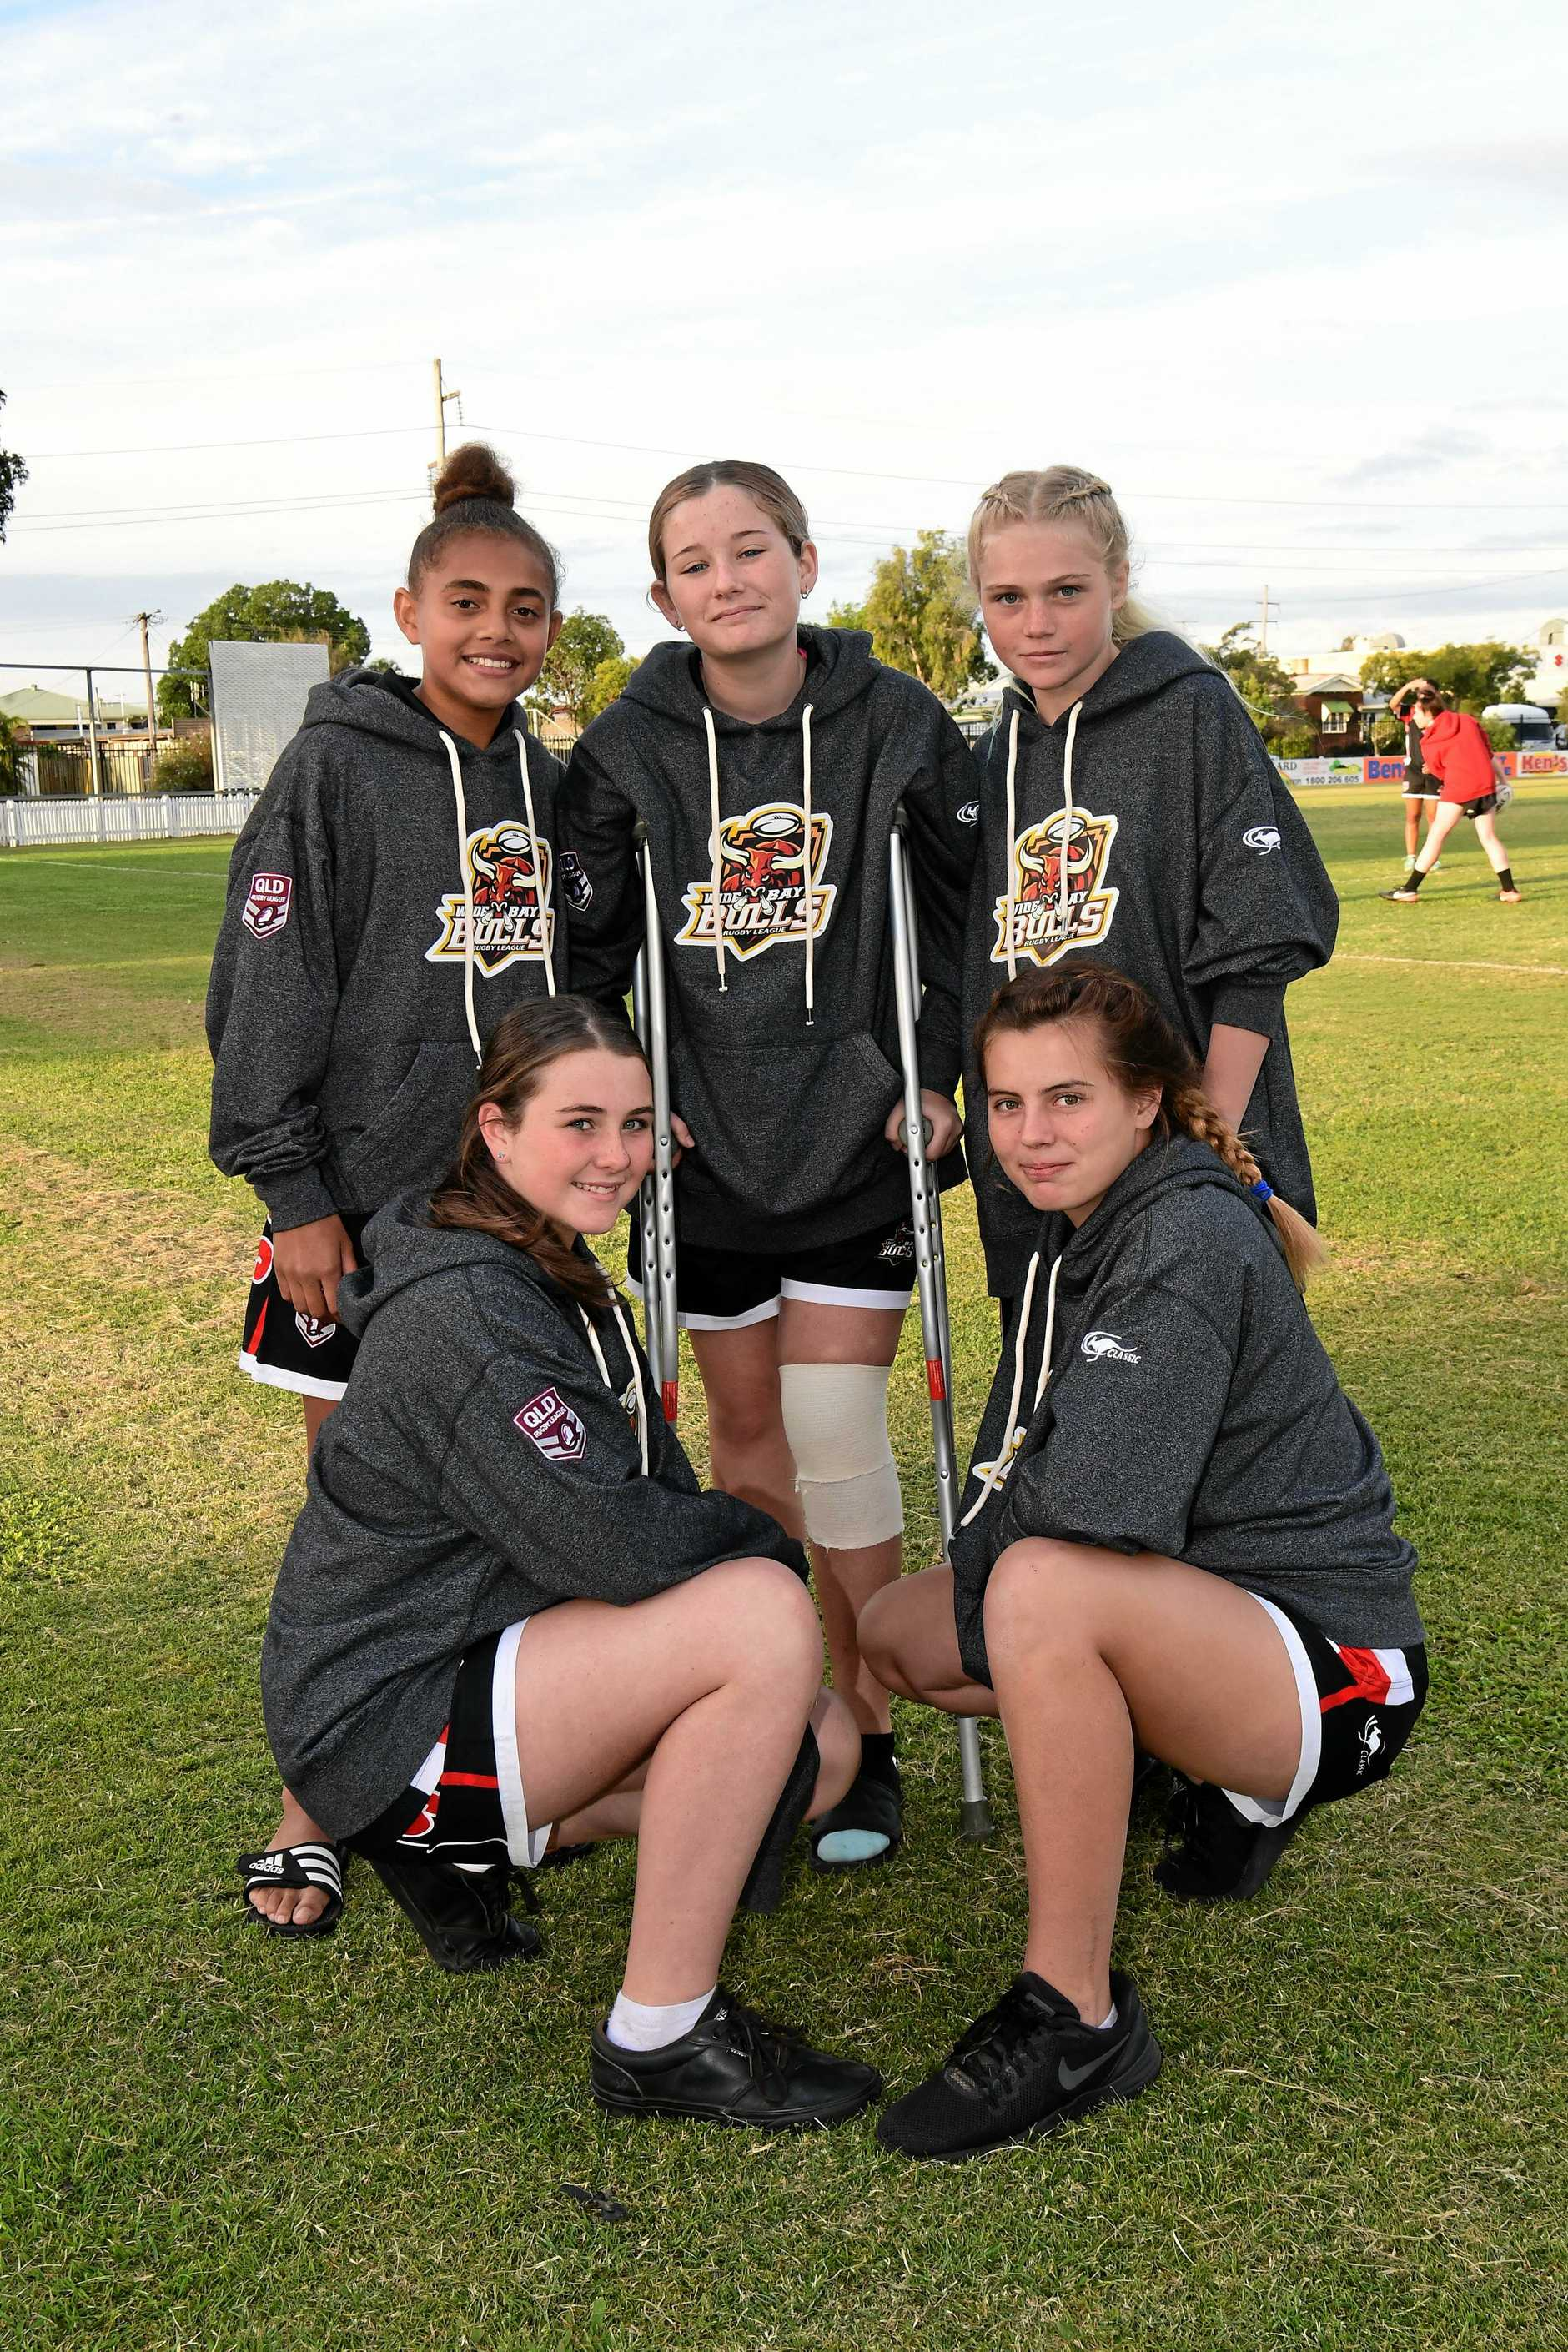 UNDER-14: The Wide Bay Bulls side: Shiloh Atkinson and Chelsea Howarth (front), Caitlin Tanner, Crystal Goodman-Jones and Karissa Jeffs (back).